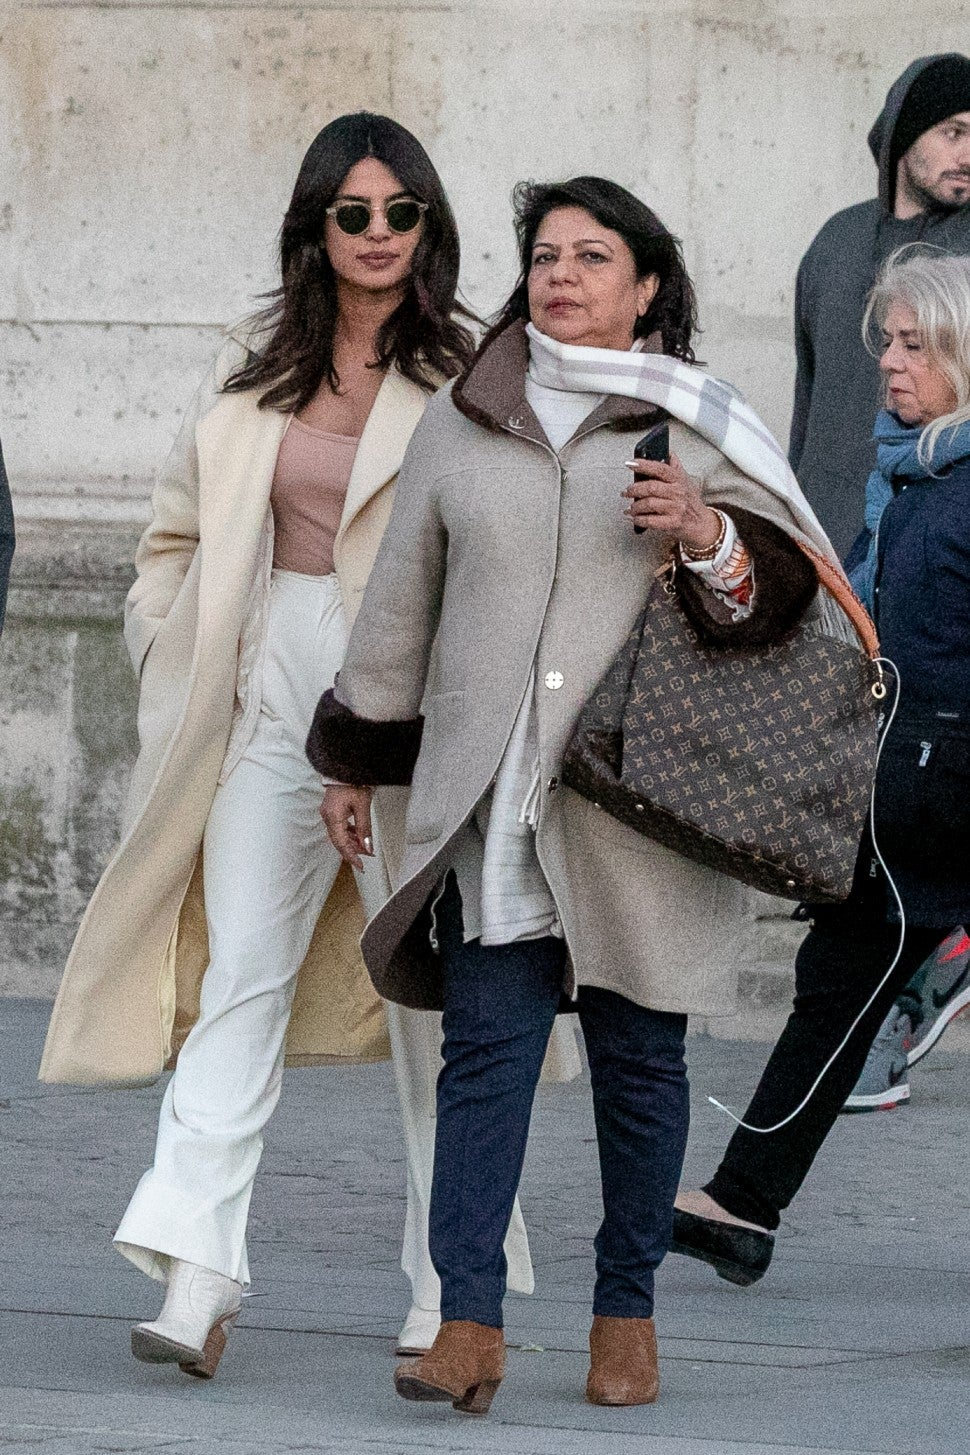 Priyanka Chopra and her mom in Paris